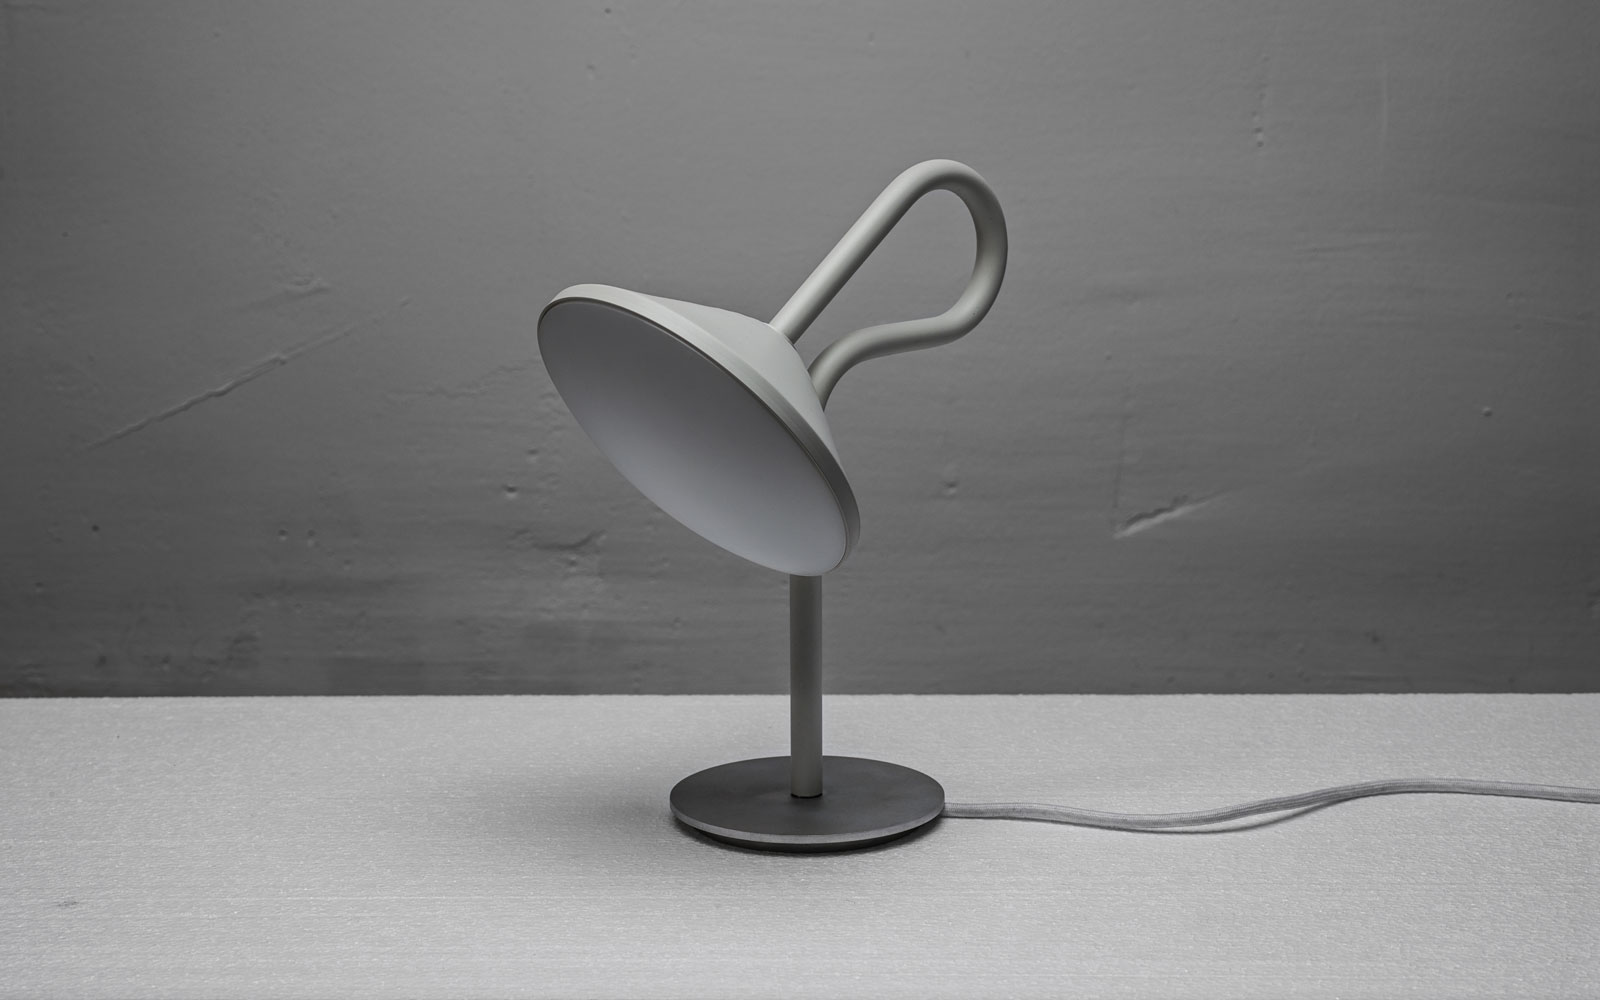 Round Lamp by Bao-Nghi Droste